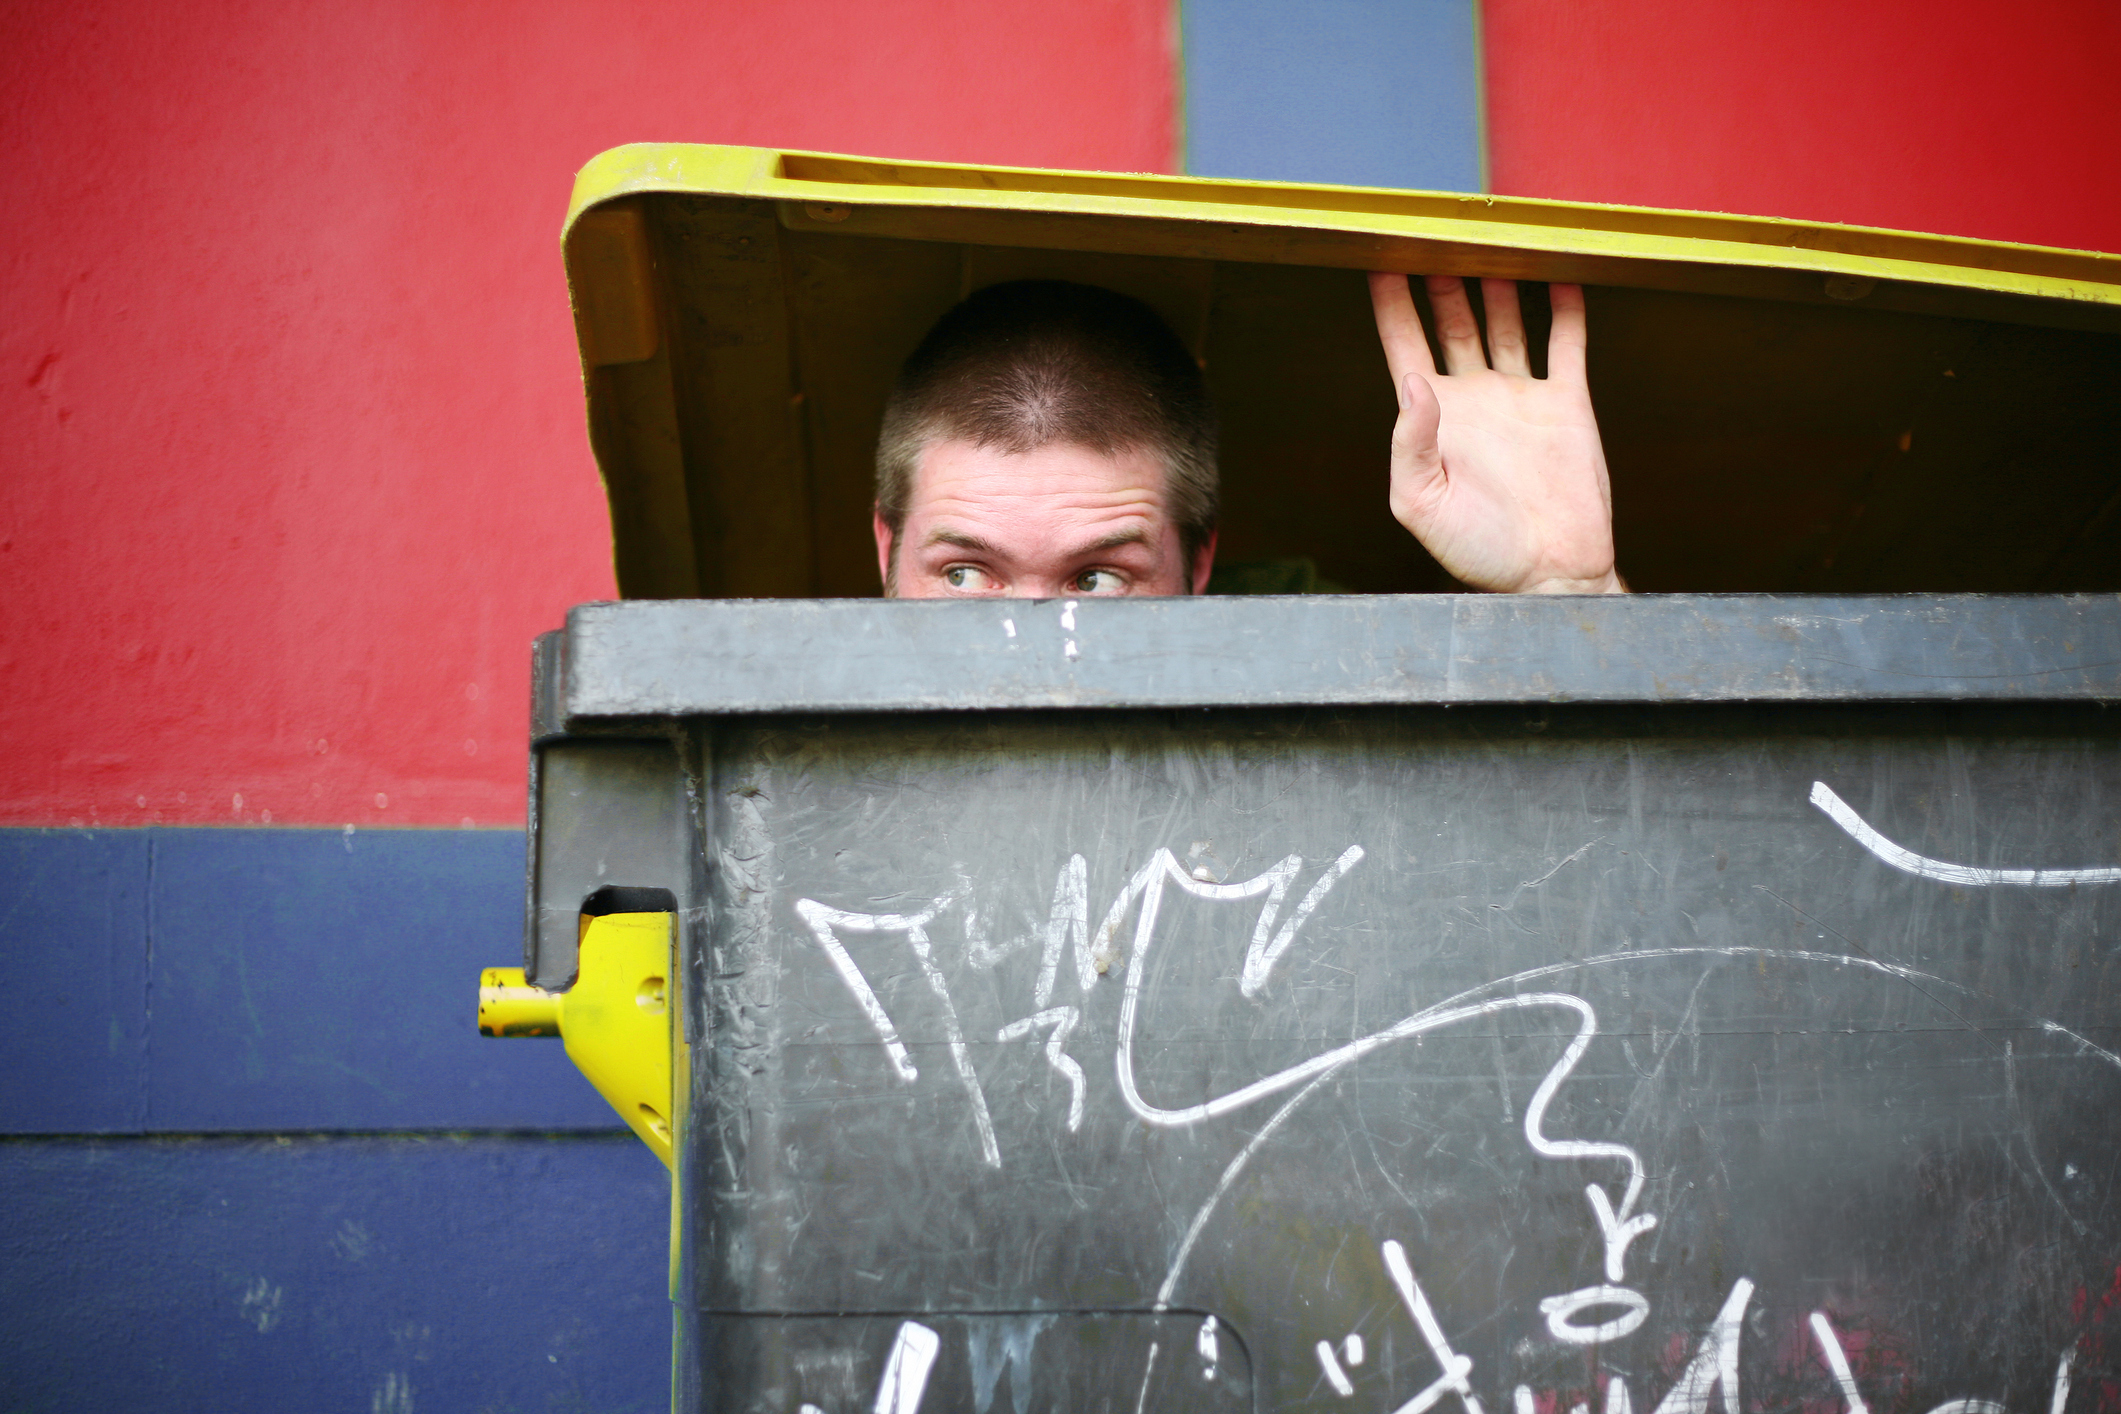 person peeking out of garbage can